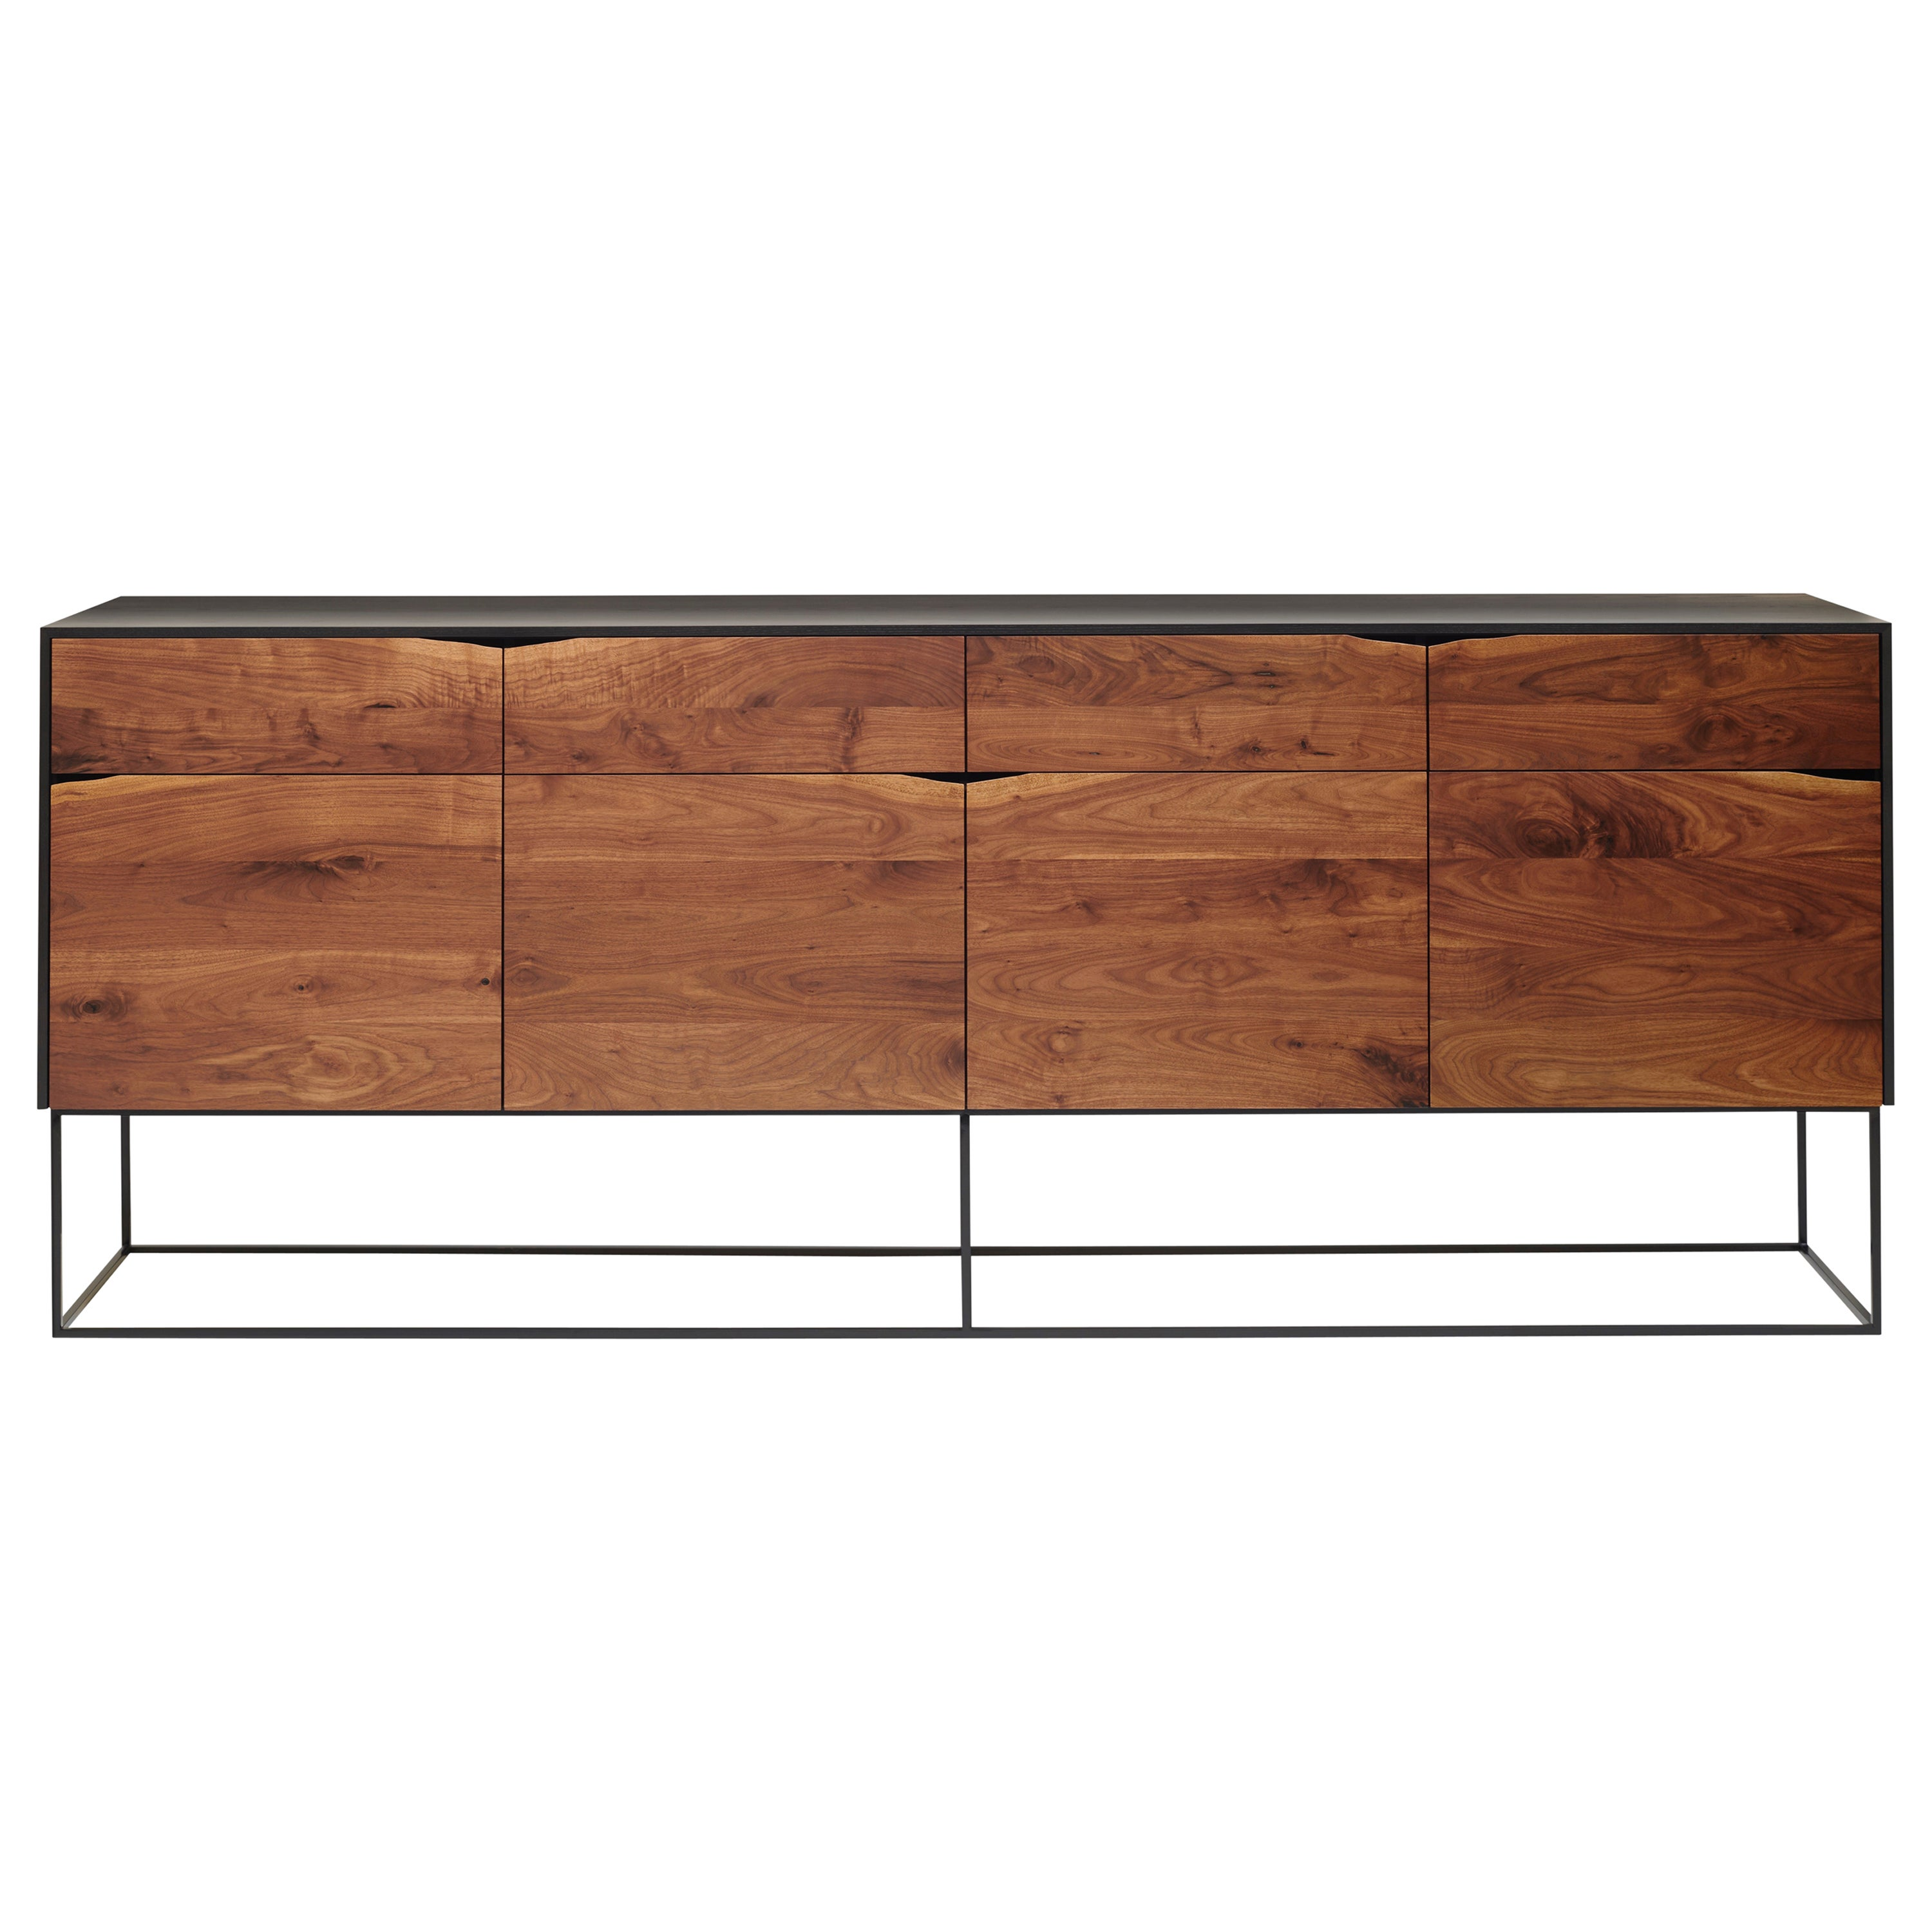 Handcrafted Rustic Modern Sideboard of Select Walnut and Black Lacquered Ash